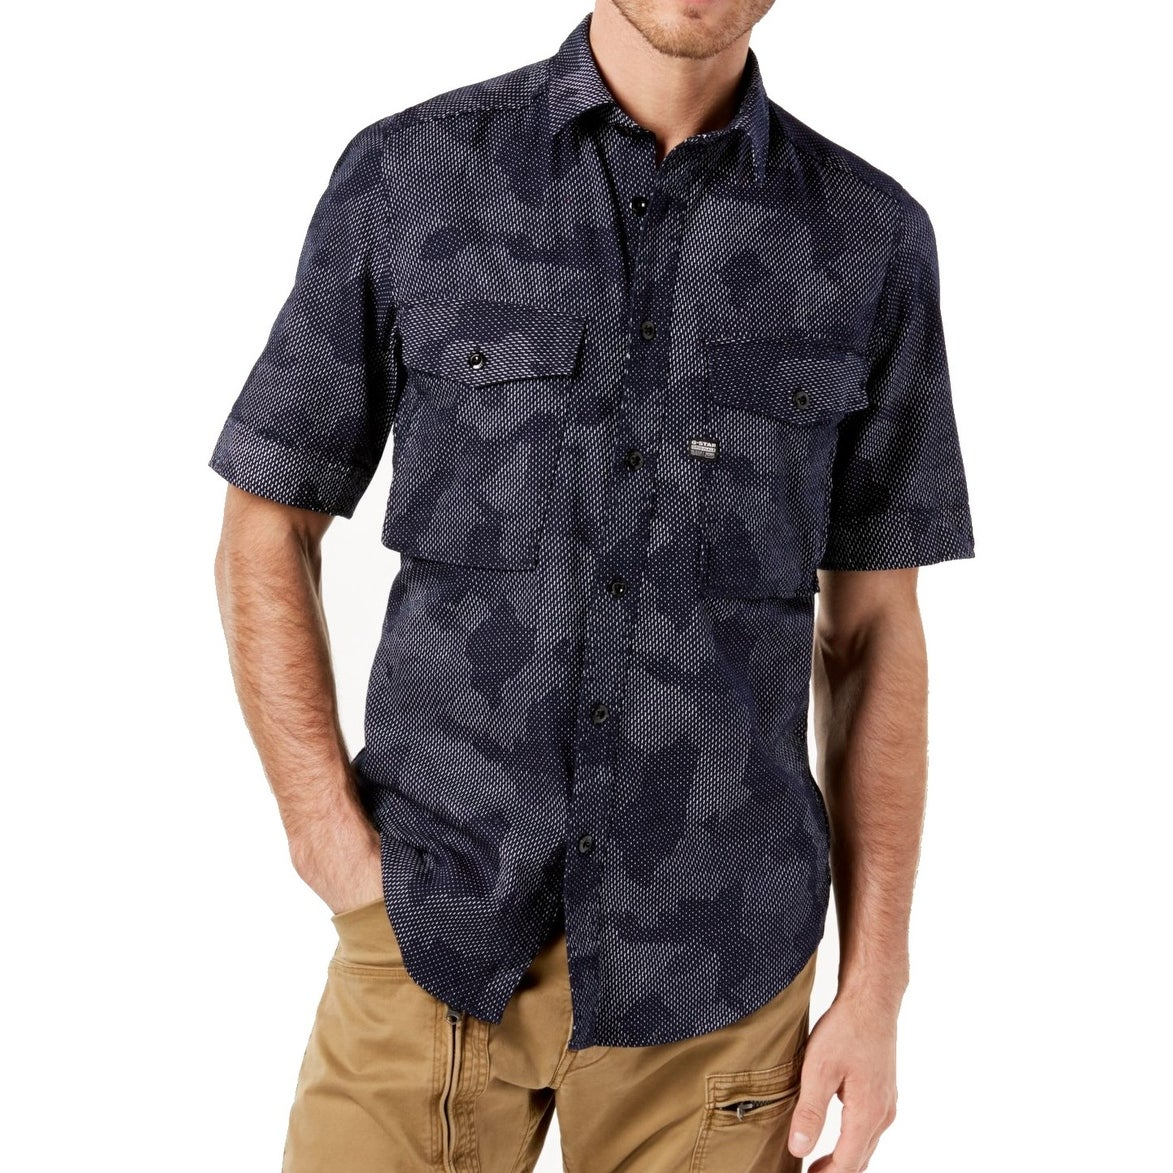 88ebbe16cd Shop G-Star Raw Blue Mens Size XL Button Down Short-Sleeve Dual-Pocket -  Free Shipping Today - Overstock - 27693970